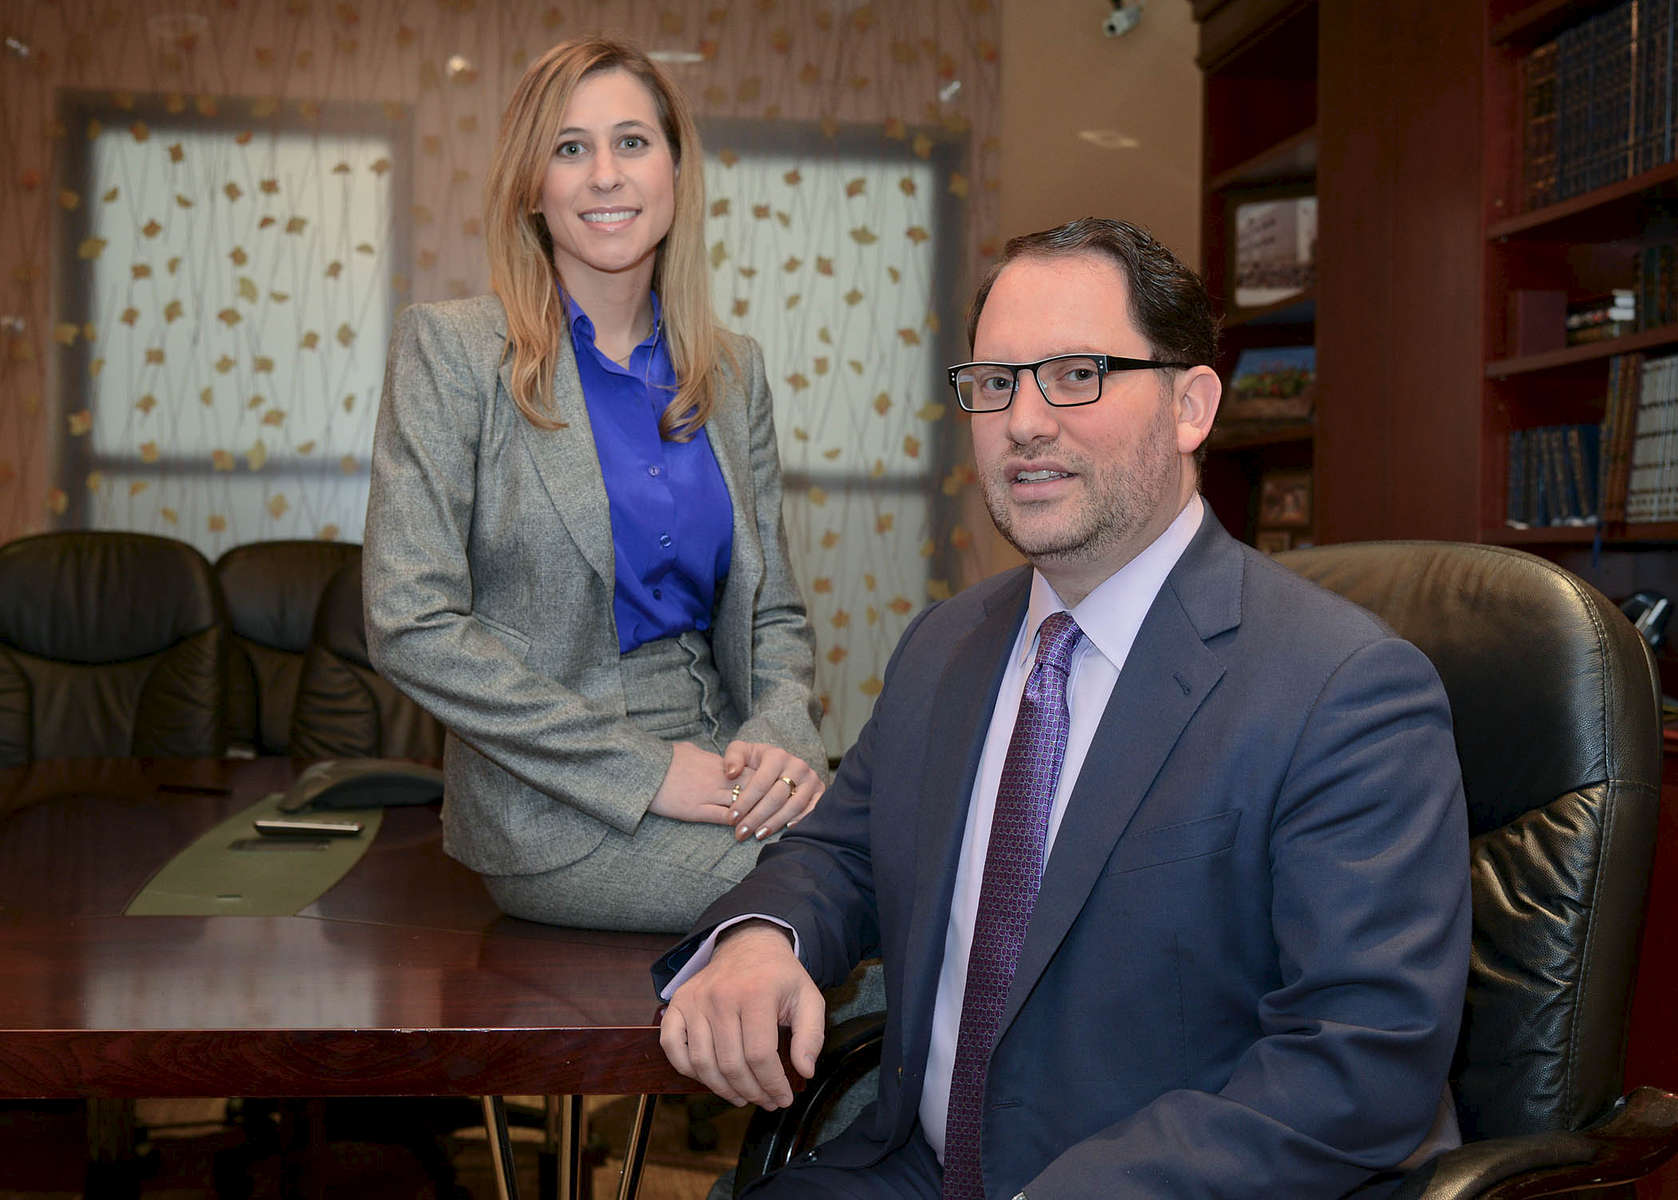 Elchonon Shagalov-seated, General Counsel & VP for Legal Affairs Diamonds International and Jessica Blumert-Associate, Office for Legal Affairs Diamonds International from Cardozo School of Law112613